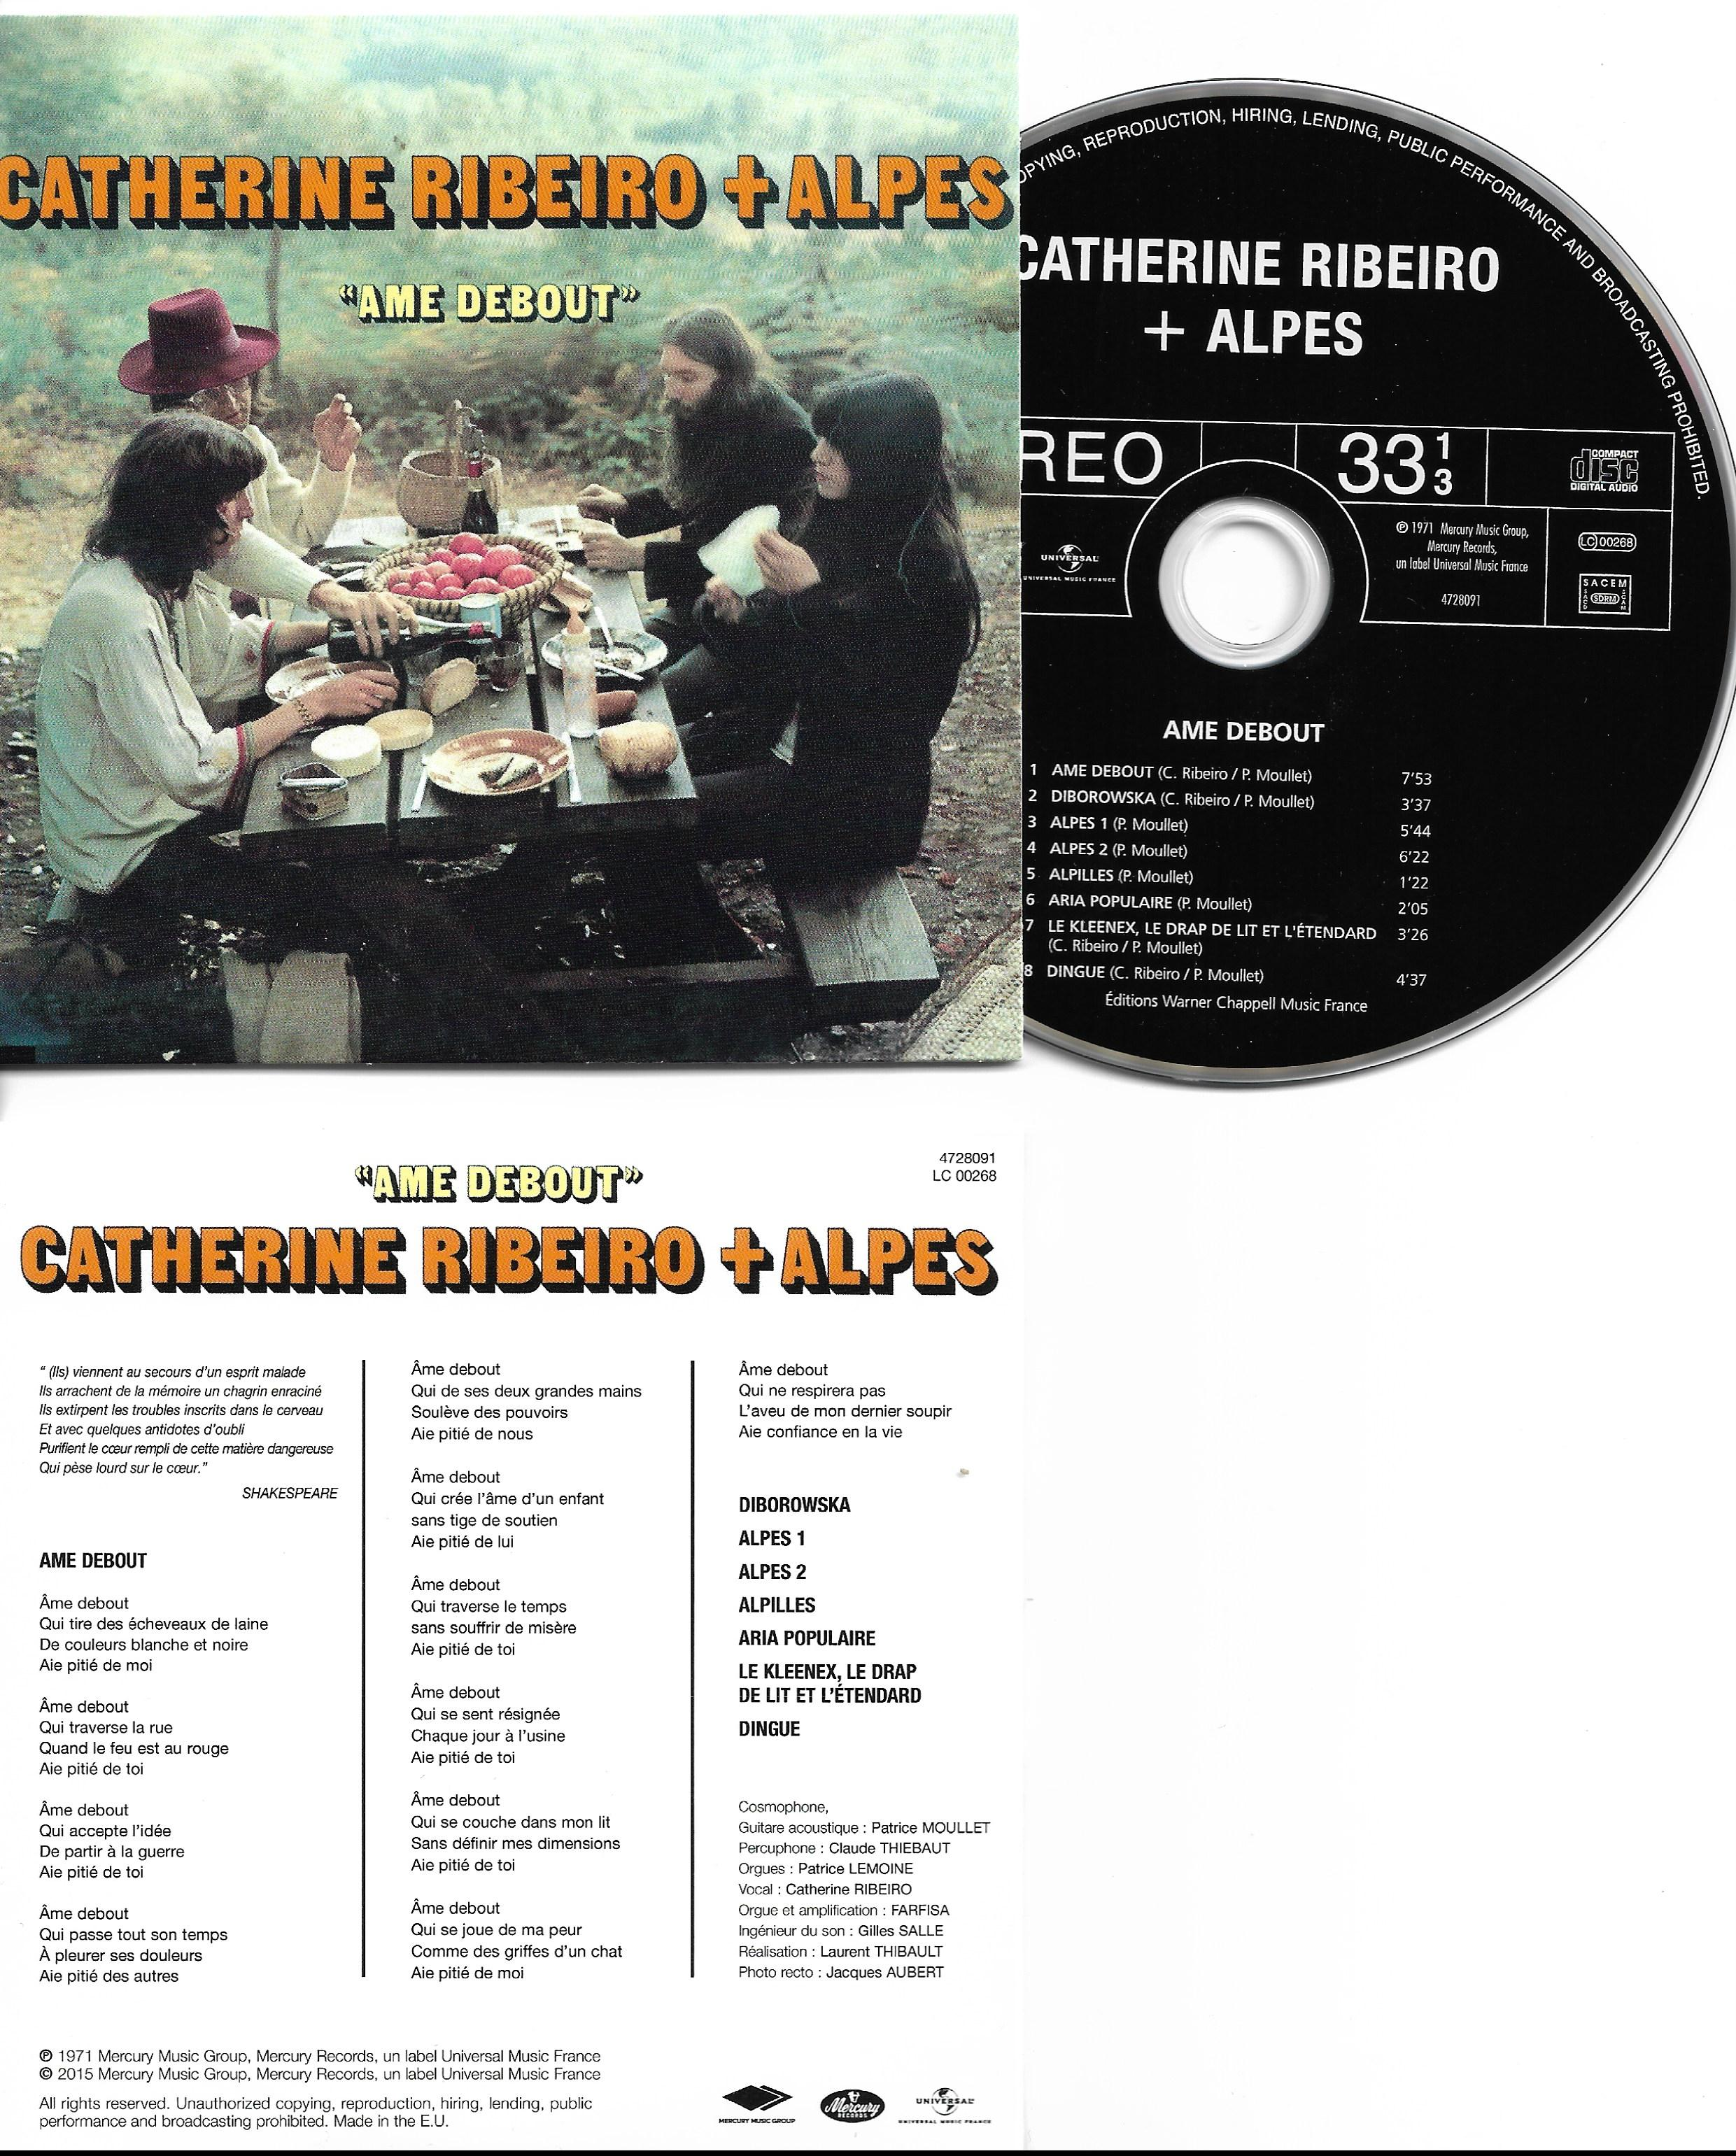 CATHERINE RIBEIRO + ALPES - Ame Debout - MINI LP REPLICA CARD SLEEVE -8 -TRACK - CD